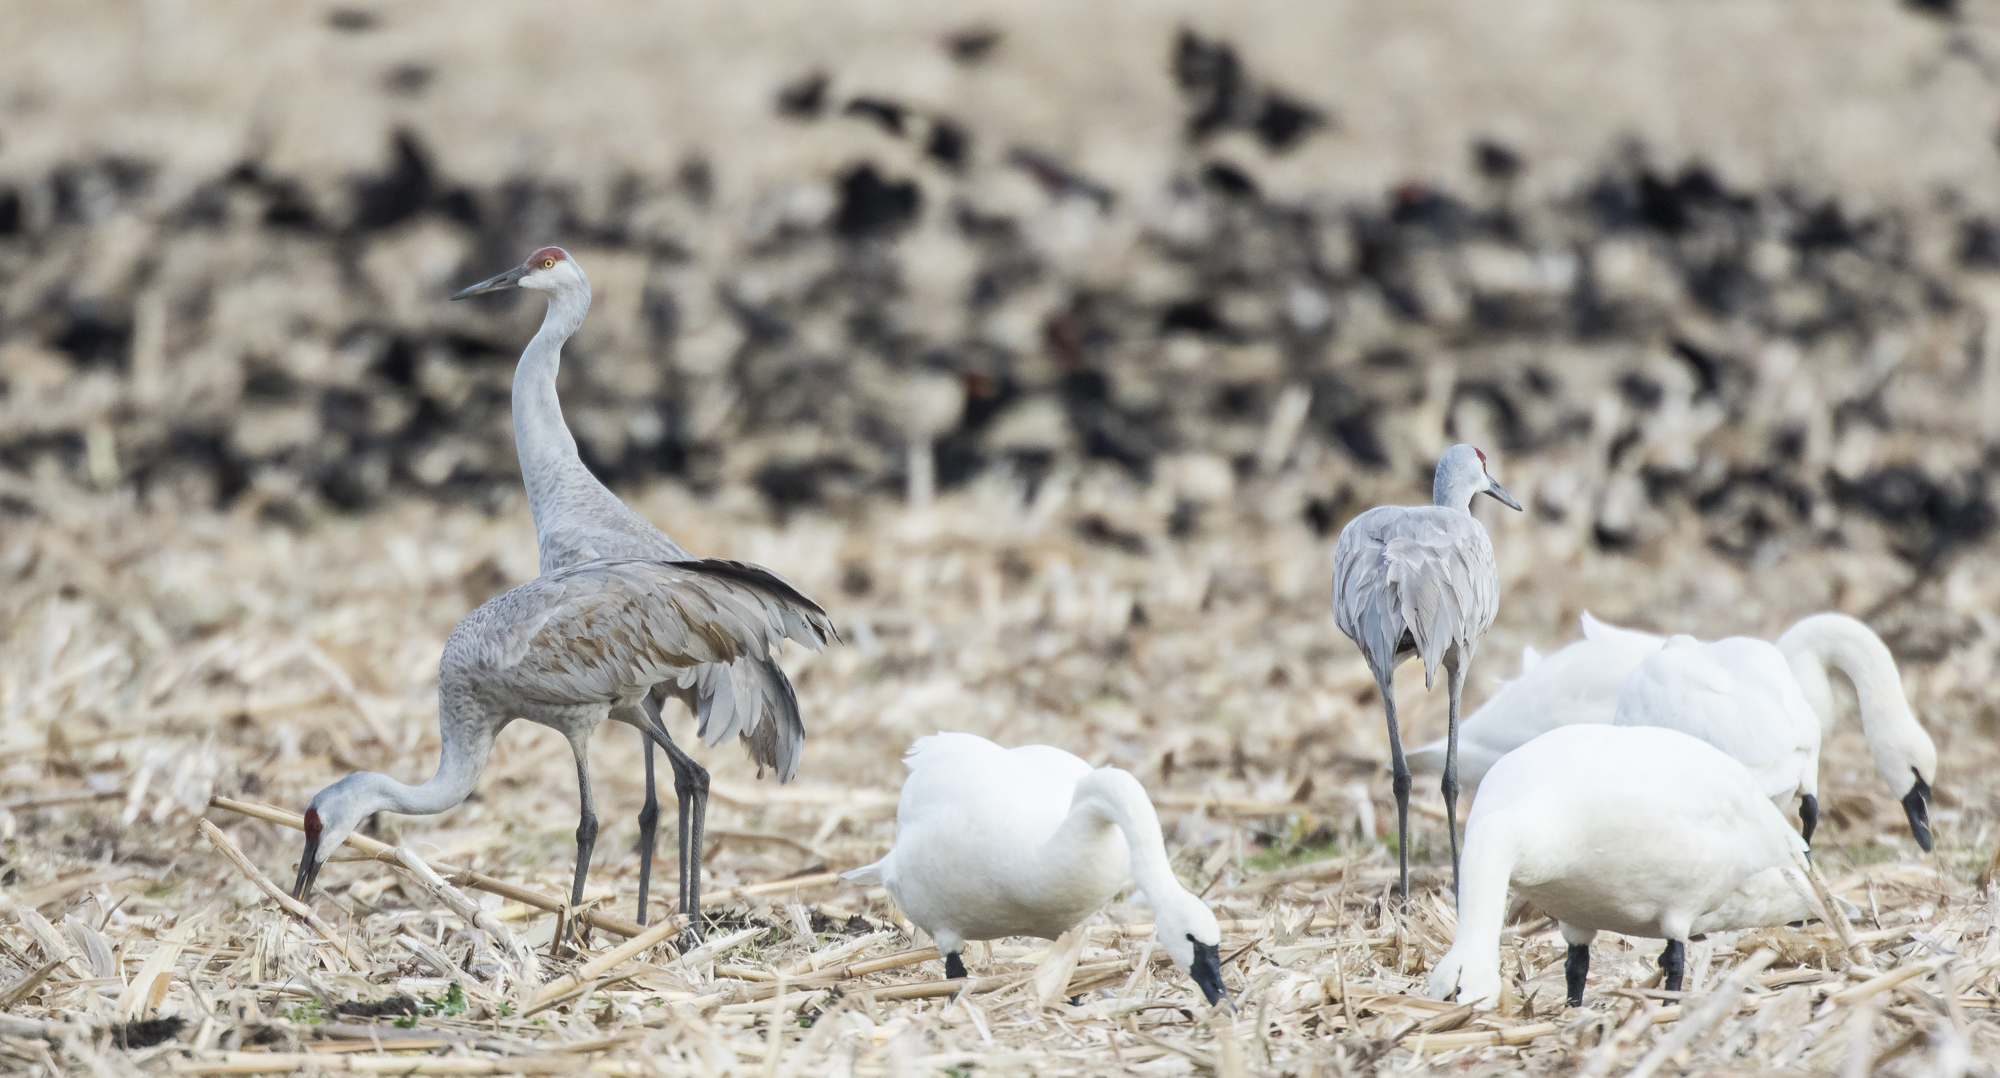 Sandhill cranes, swans, and rwb in cornfield